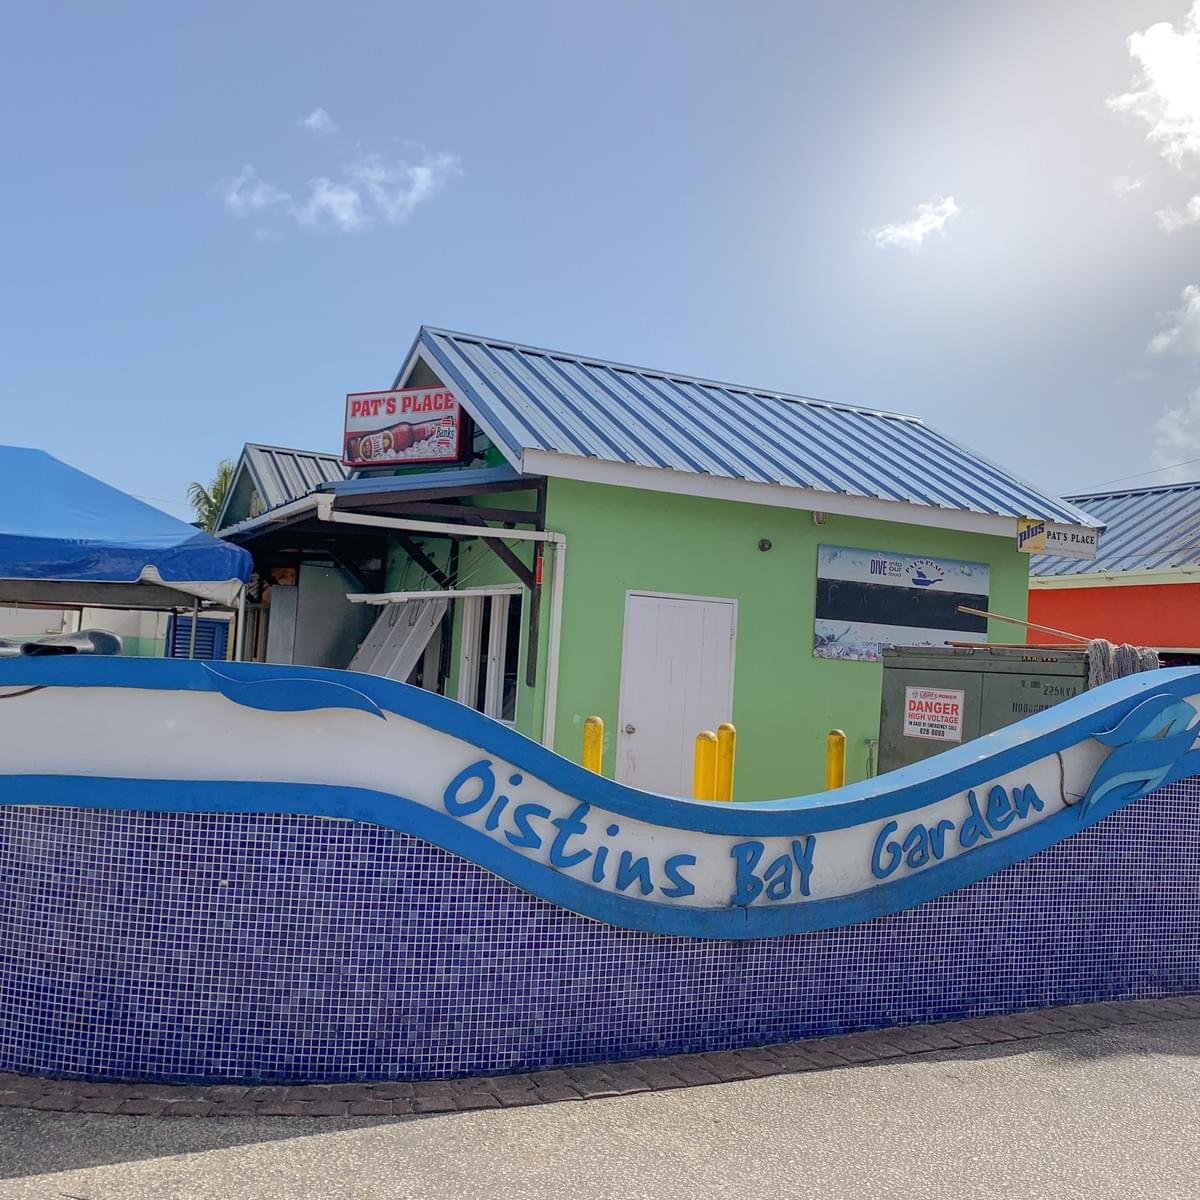 Pat's Place a popular restaurant and fish fry stall at Oistins Bay Garden in the day time in Barbados